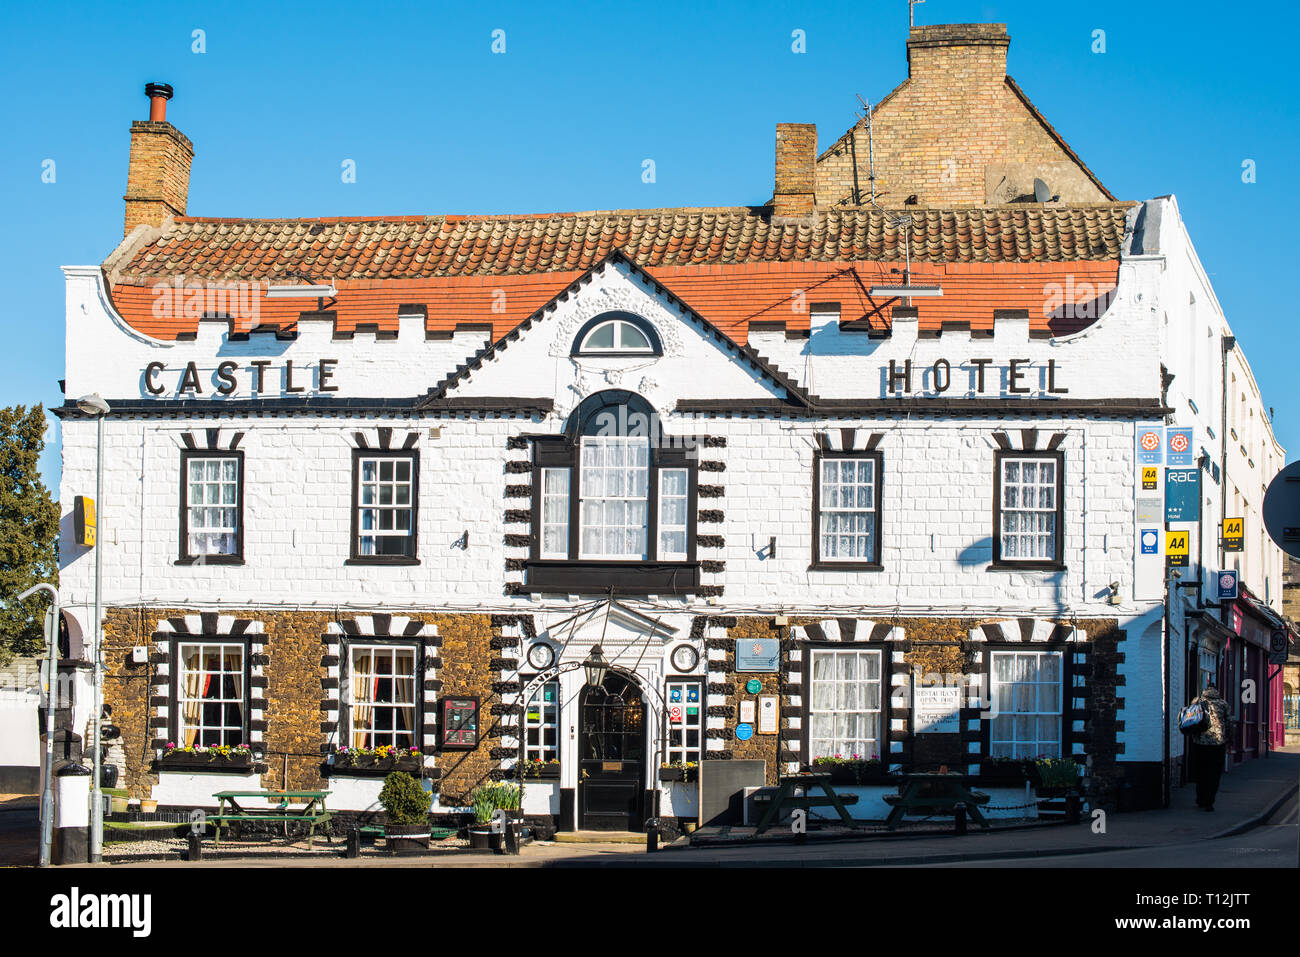 Castle Hotel in Downham Market, Norfolk, England, UK. - Stock Image